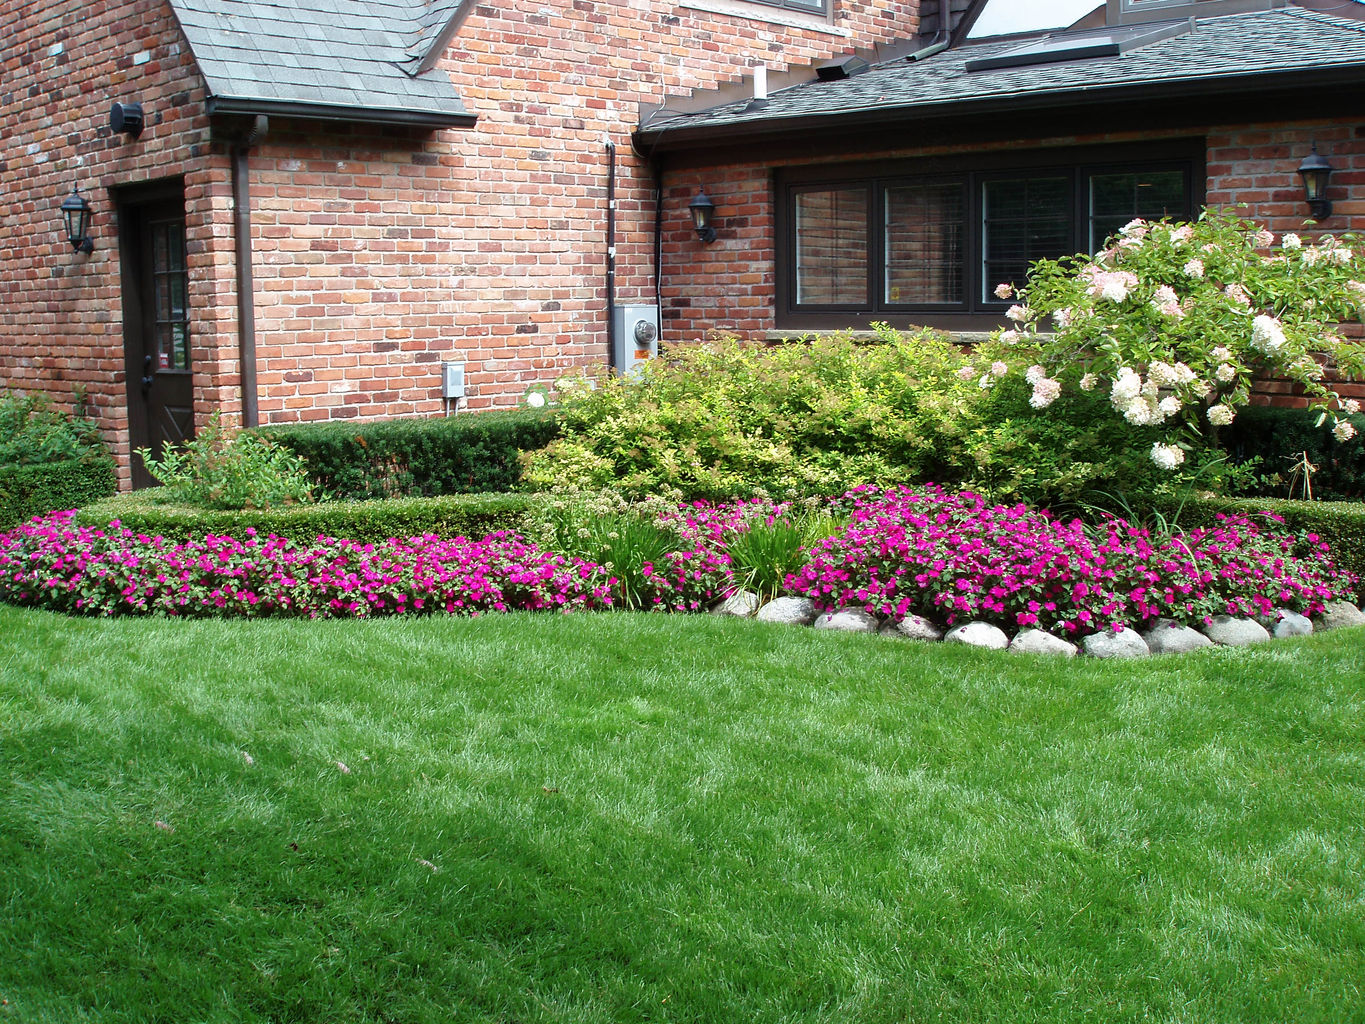 Humble Lawn Care Lawn Maintenance Irrigation Fence Repair.jpg